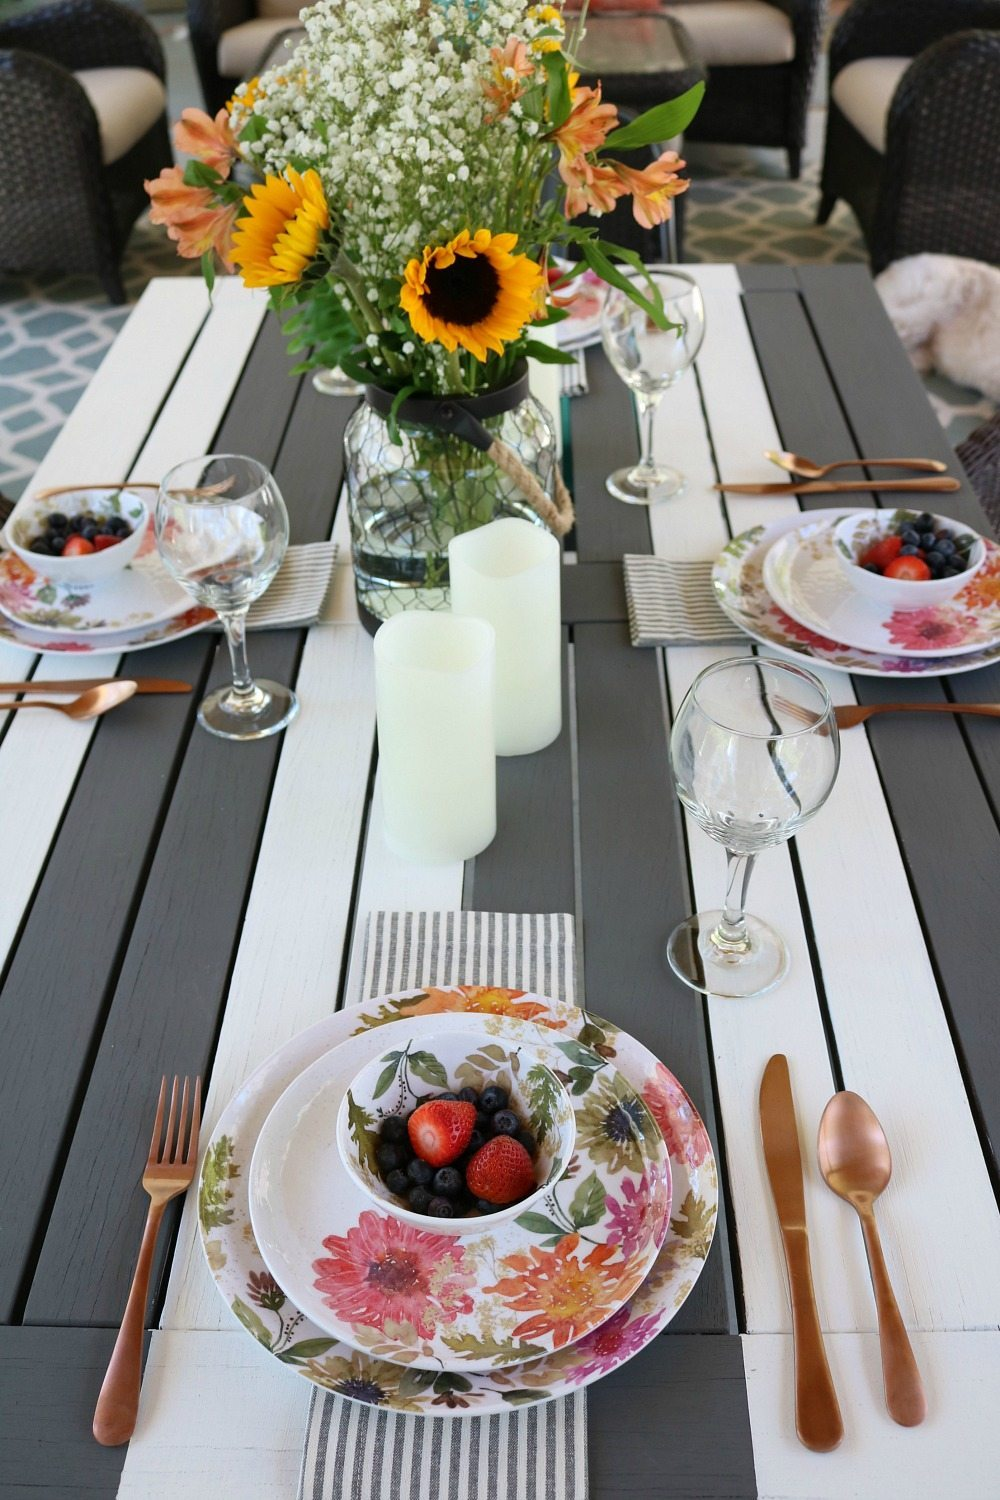 Stripes and florals make a bold statement perfect for dining outside